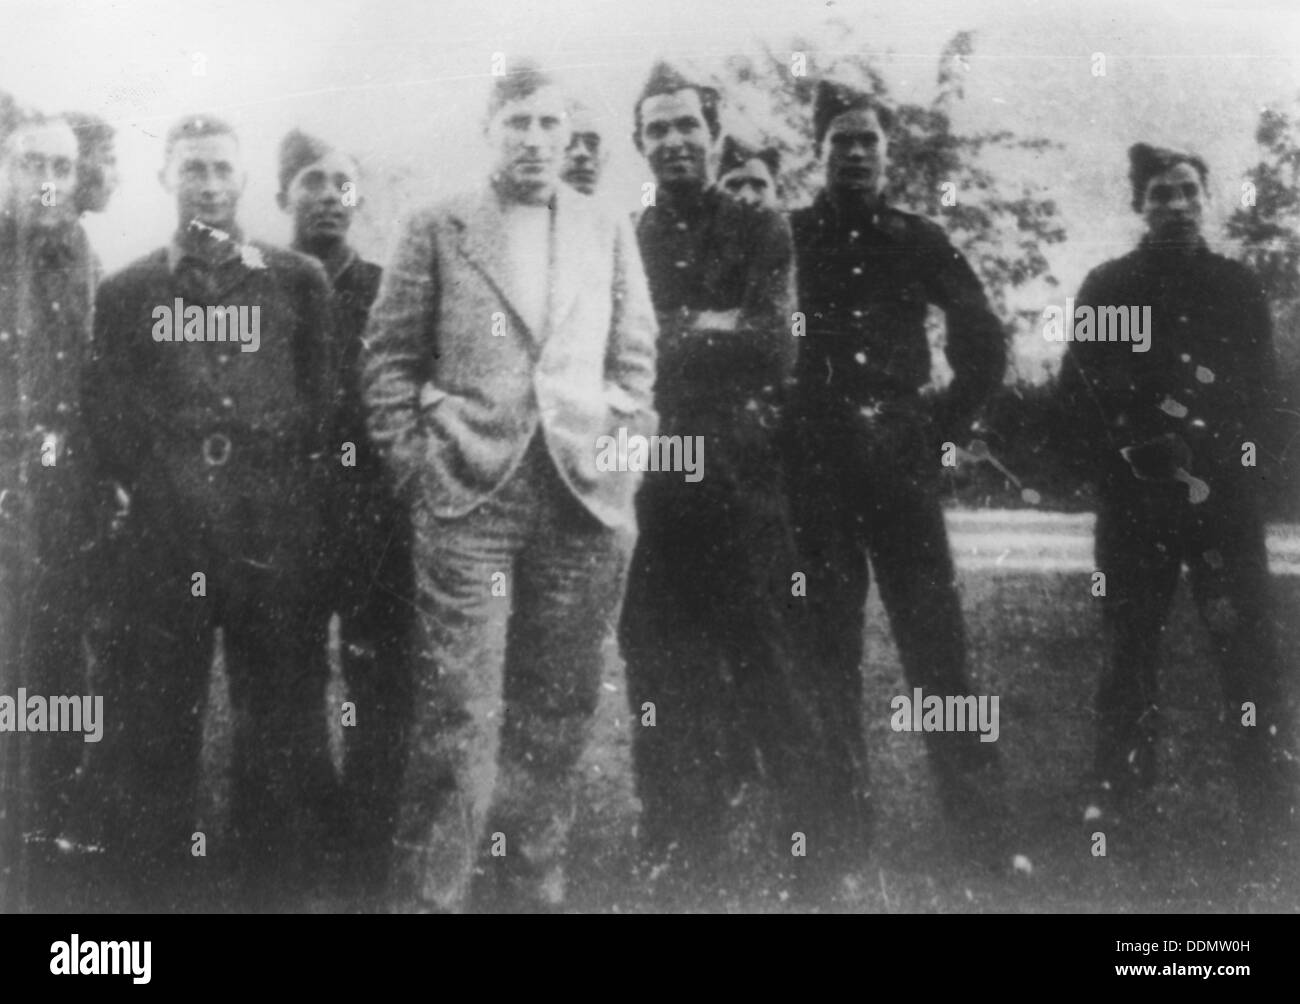 Brigadier General Orde Wingate and the Special Night Squads, Palestine, late 1930s. - Stock Image